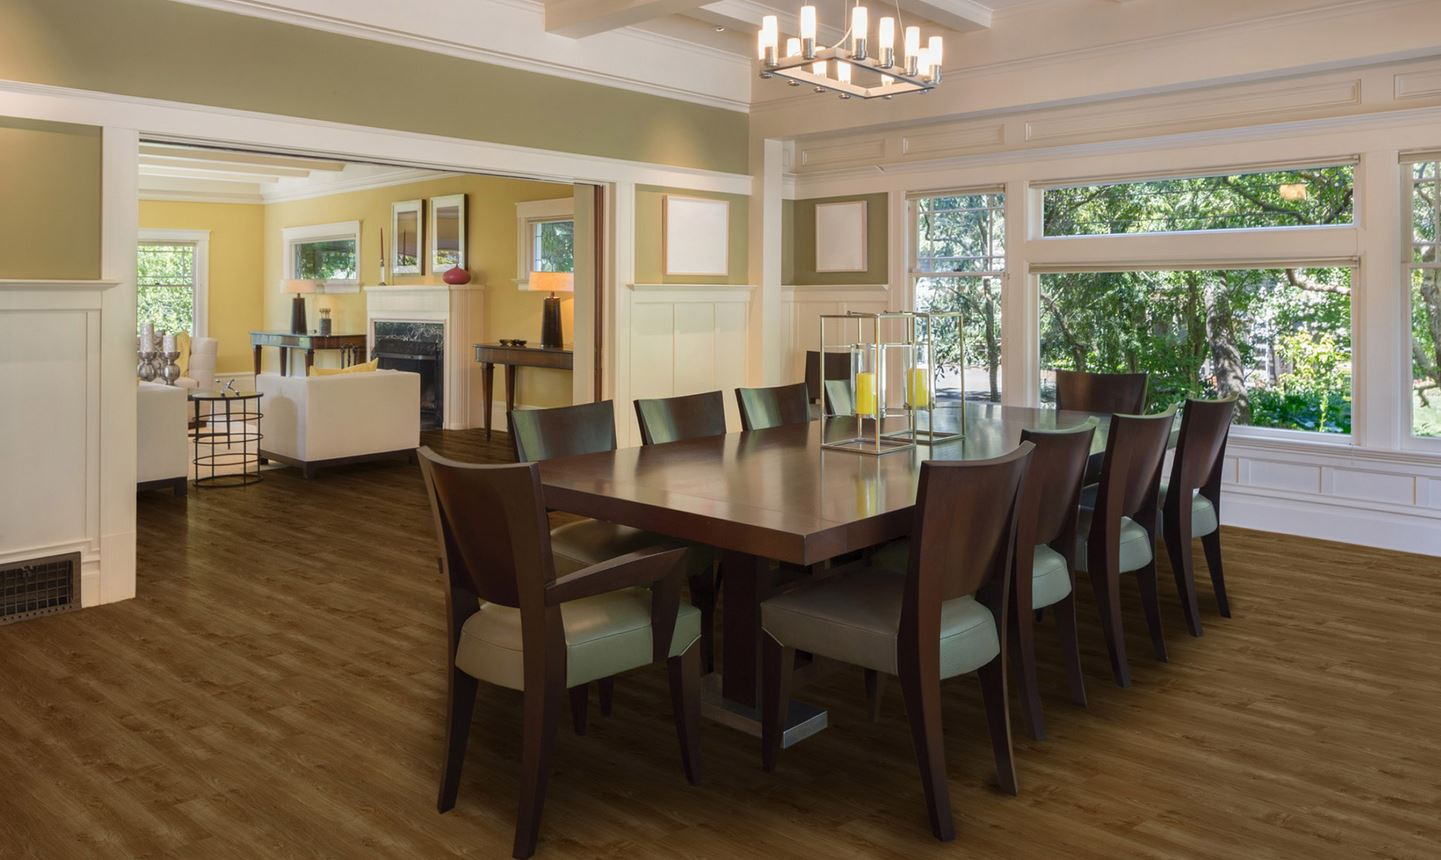 Image of a home dinning room